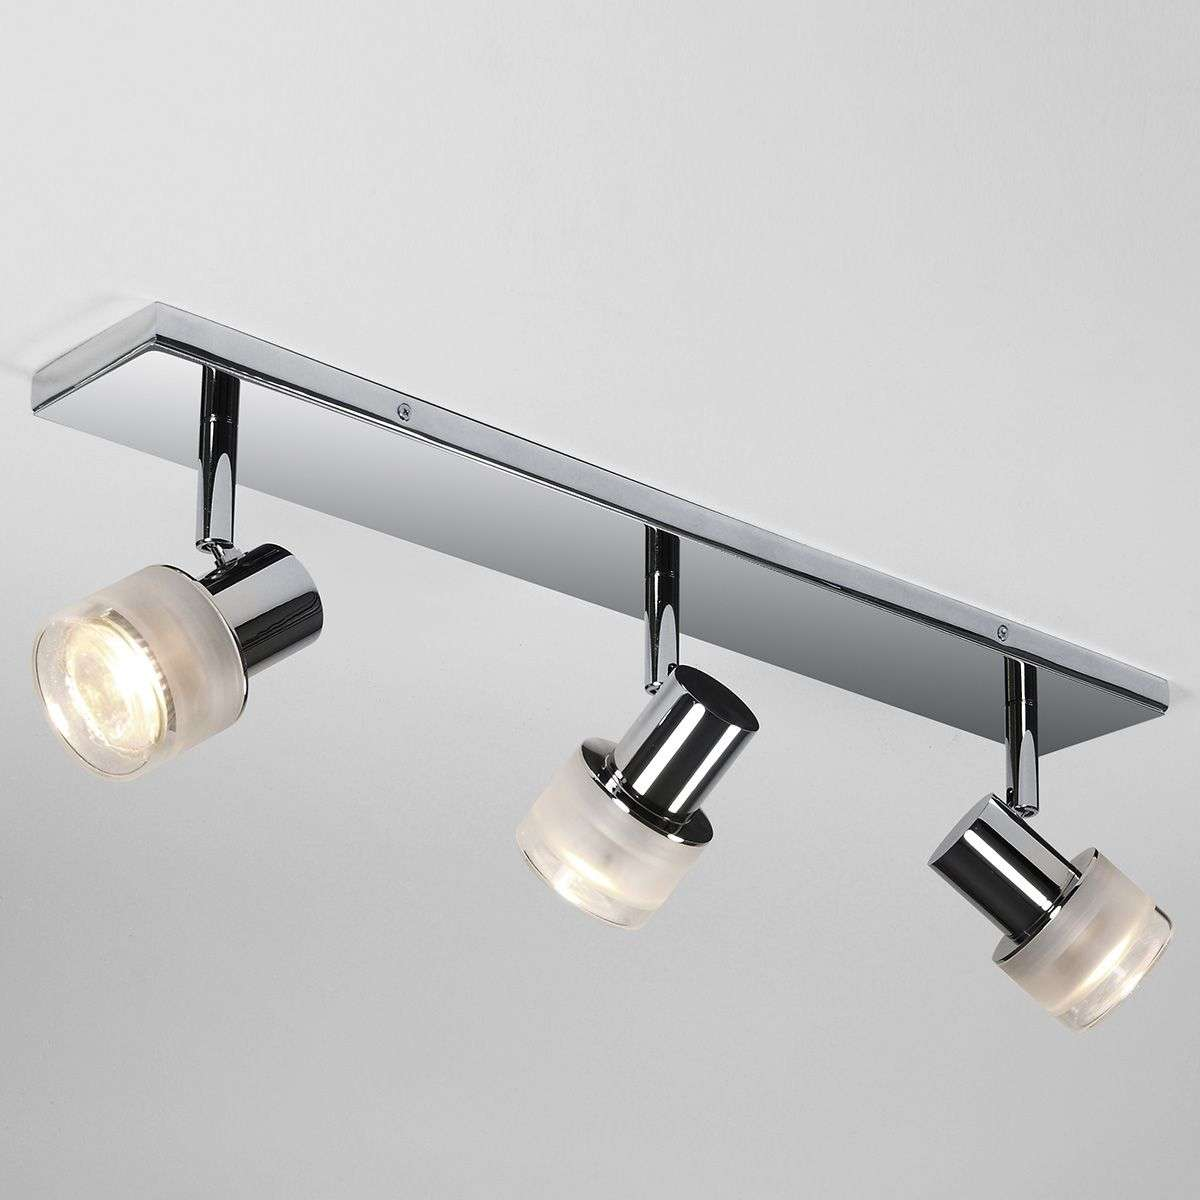 Tokai Ceiling Light Fashionable Three Bulbs Bar-1020305-32